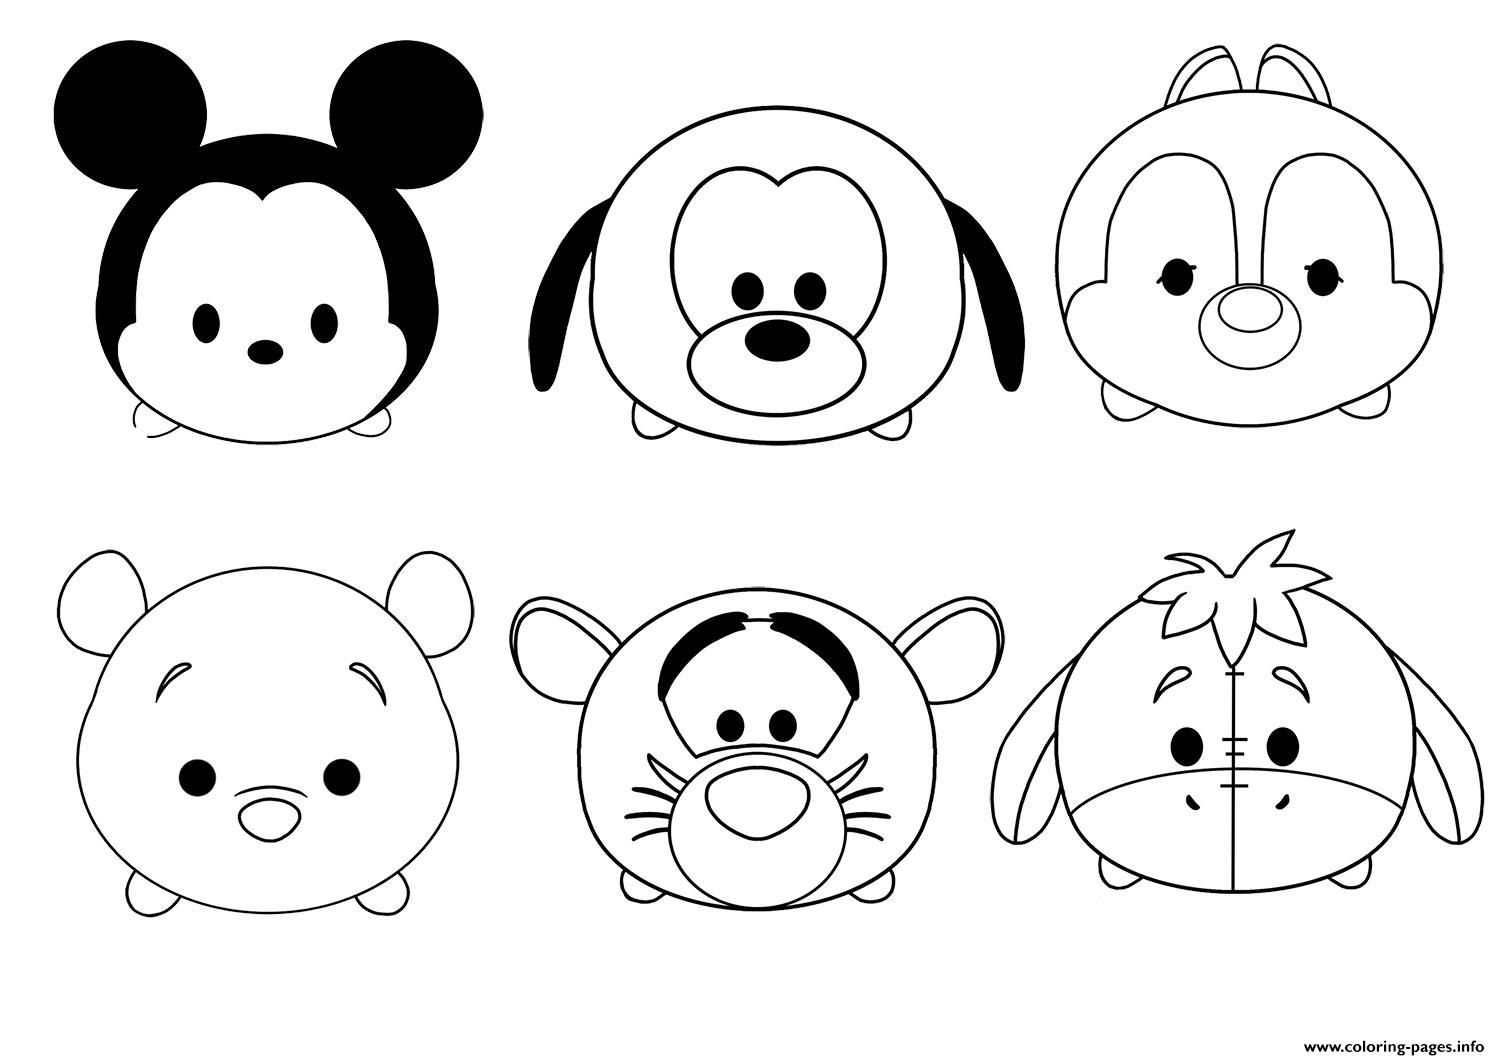 Dibujo De Bolígrafo Infantil Y Libreta Para Colorear: Print Tsum Tsum Disney Colouring Pages Coloring Pages